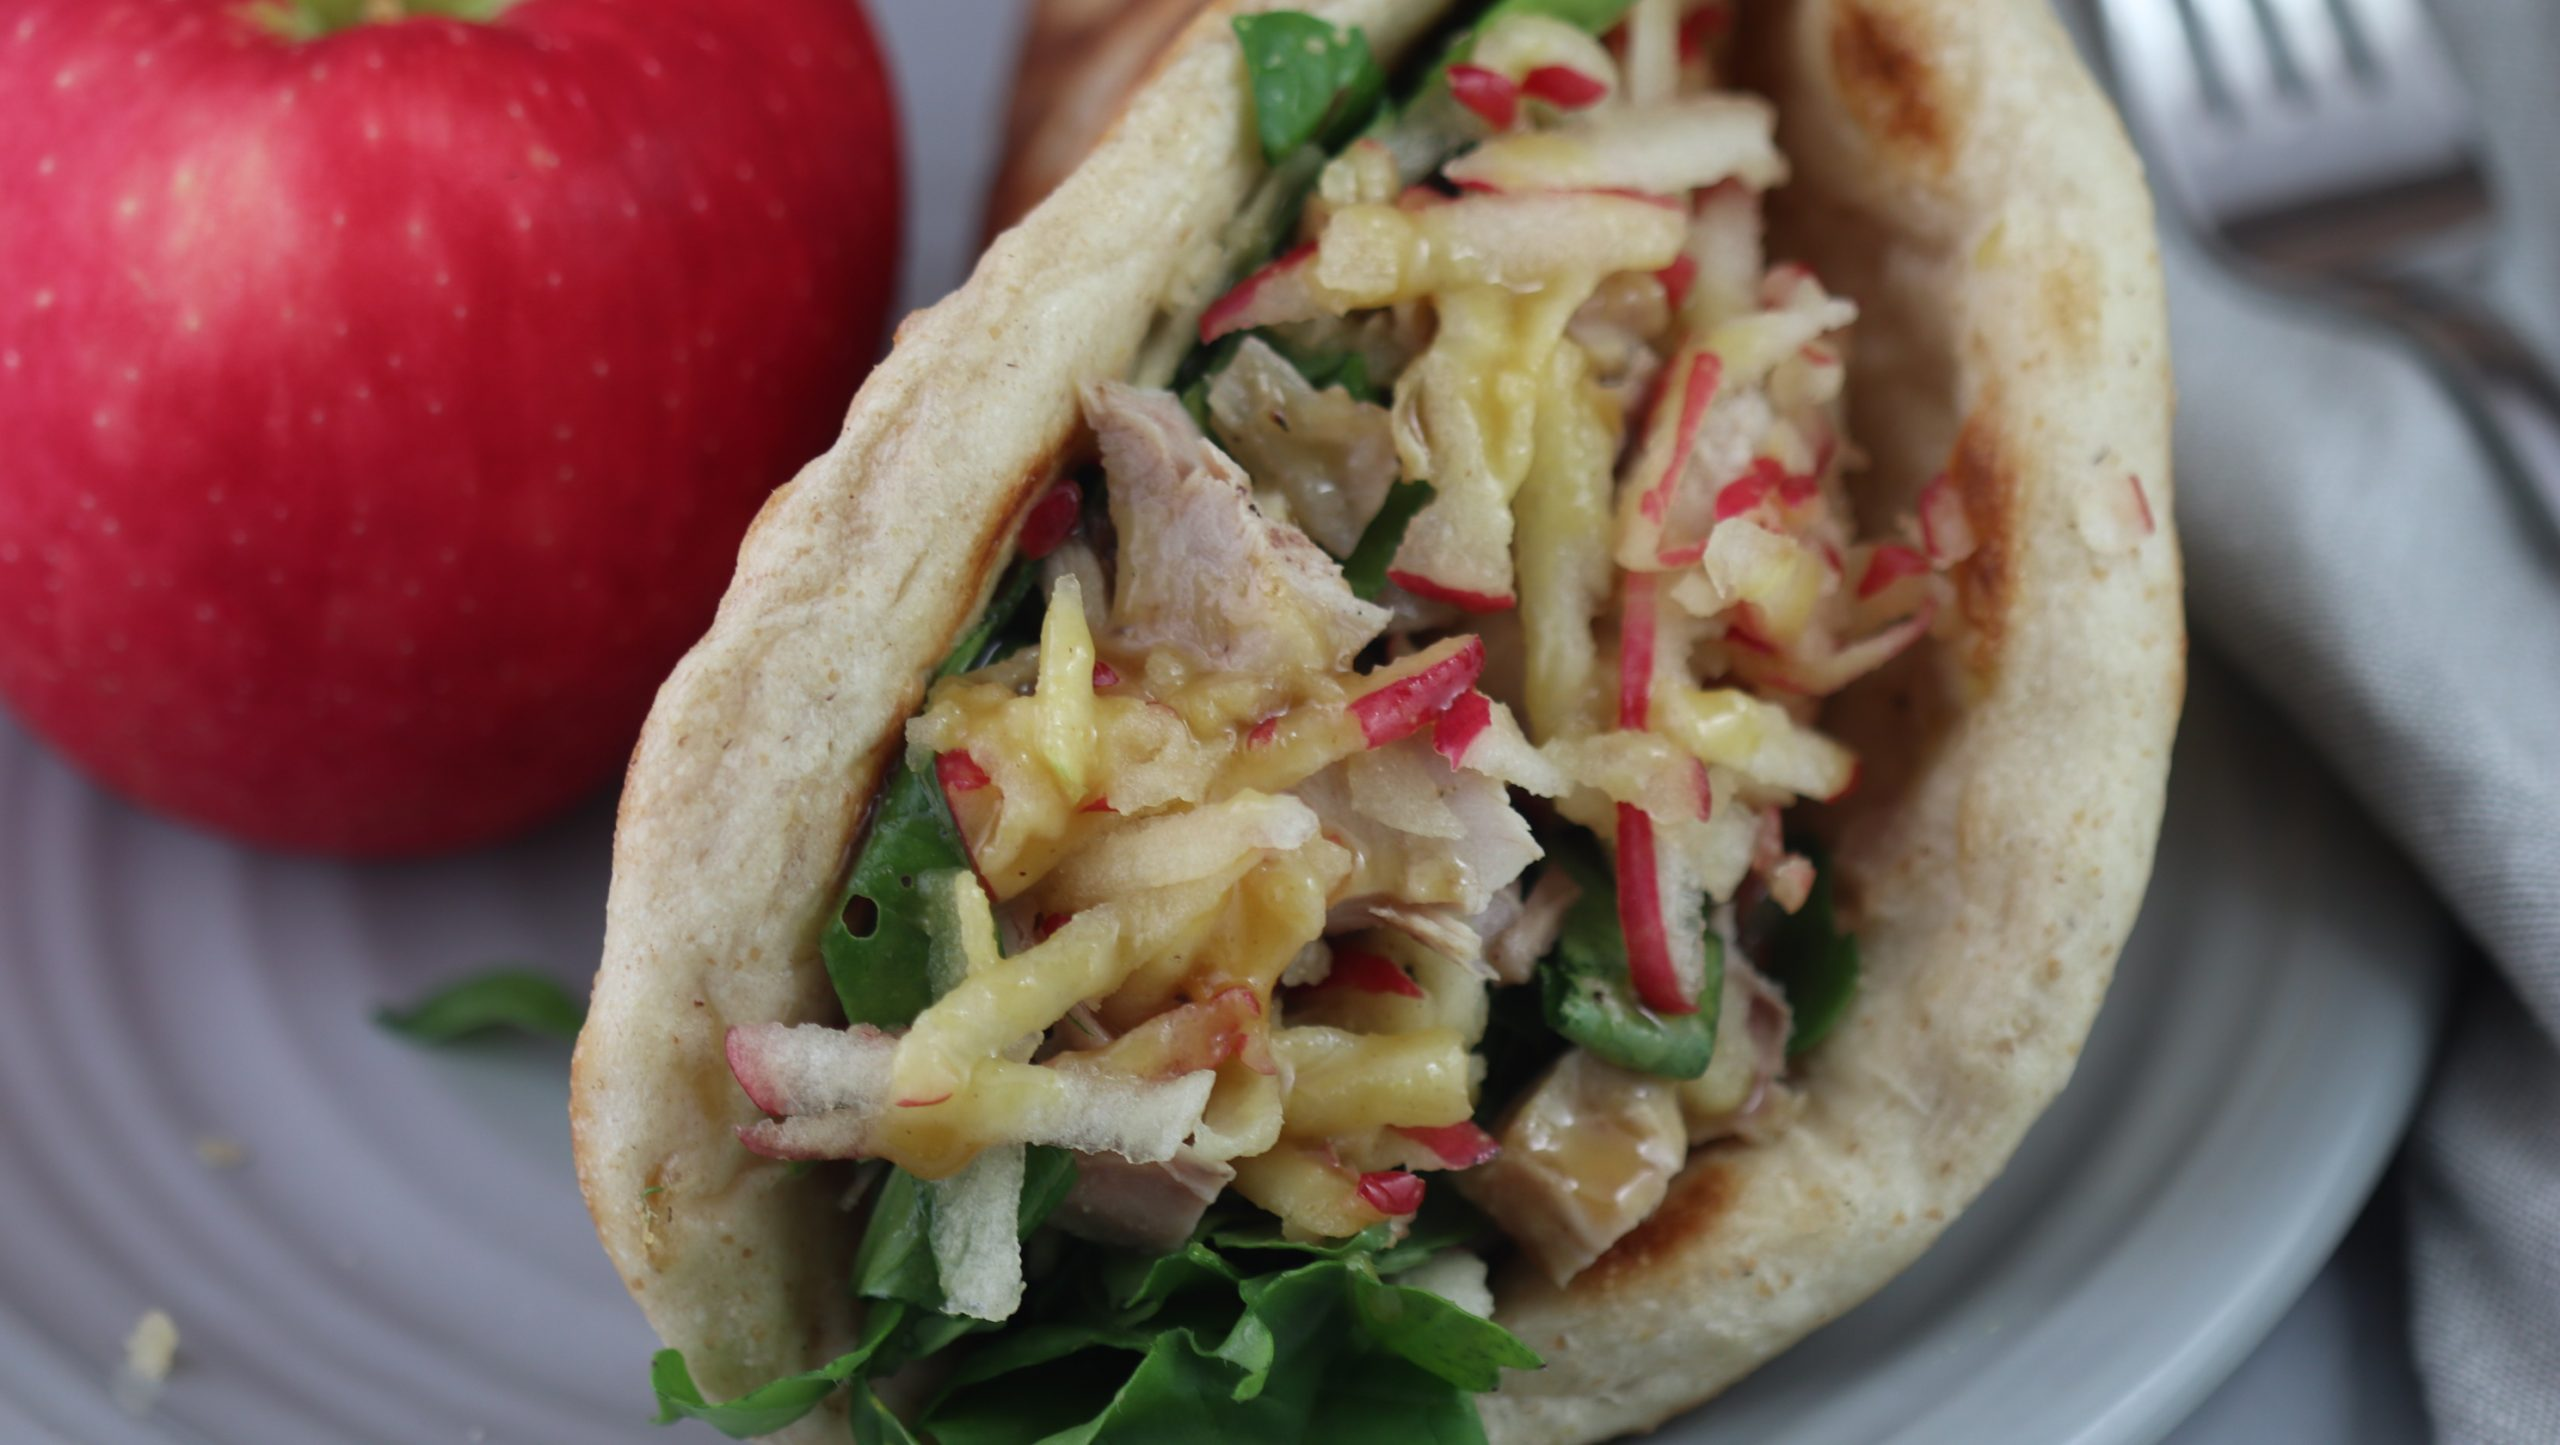 Chicken and Apple in Naan with Honey Mustard